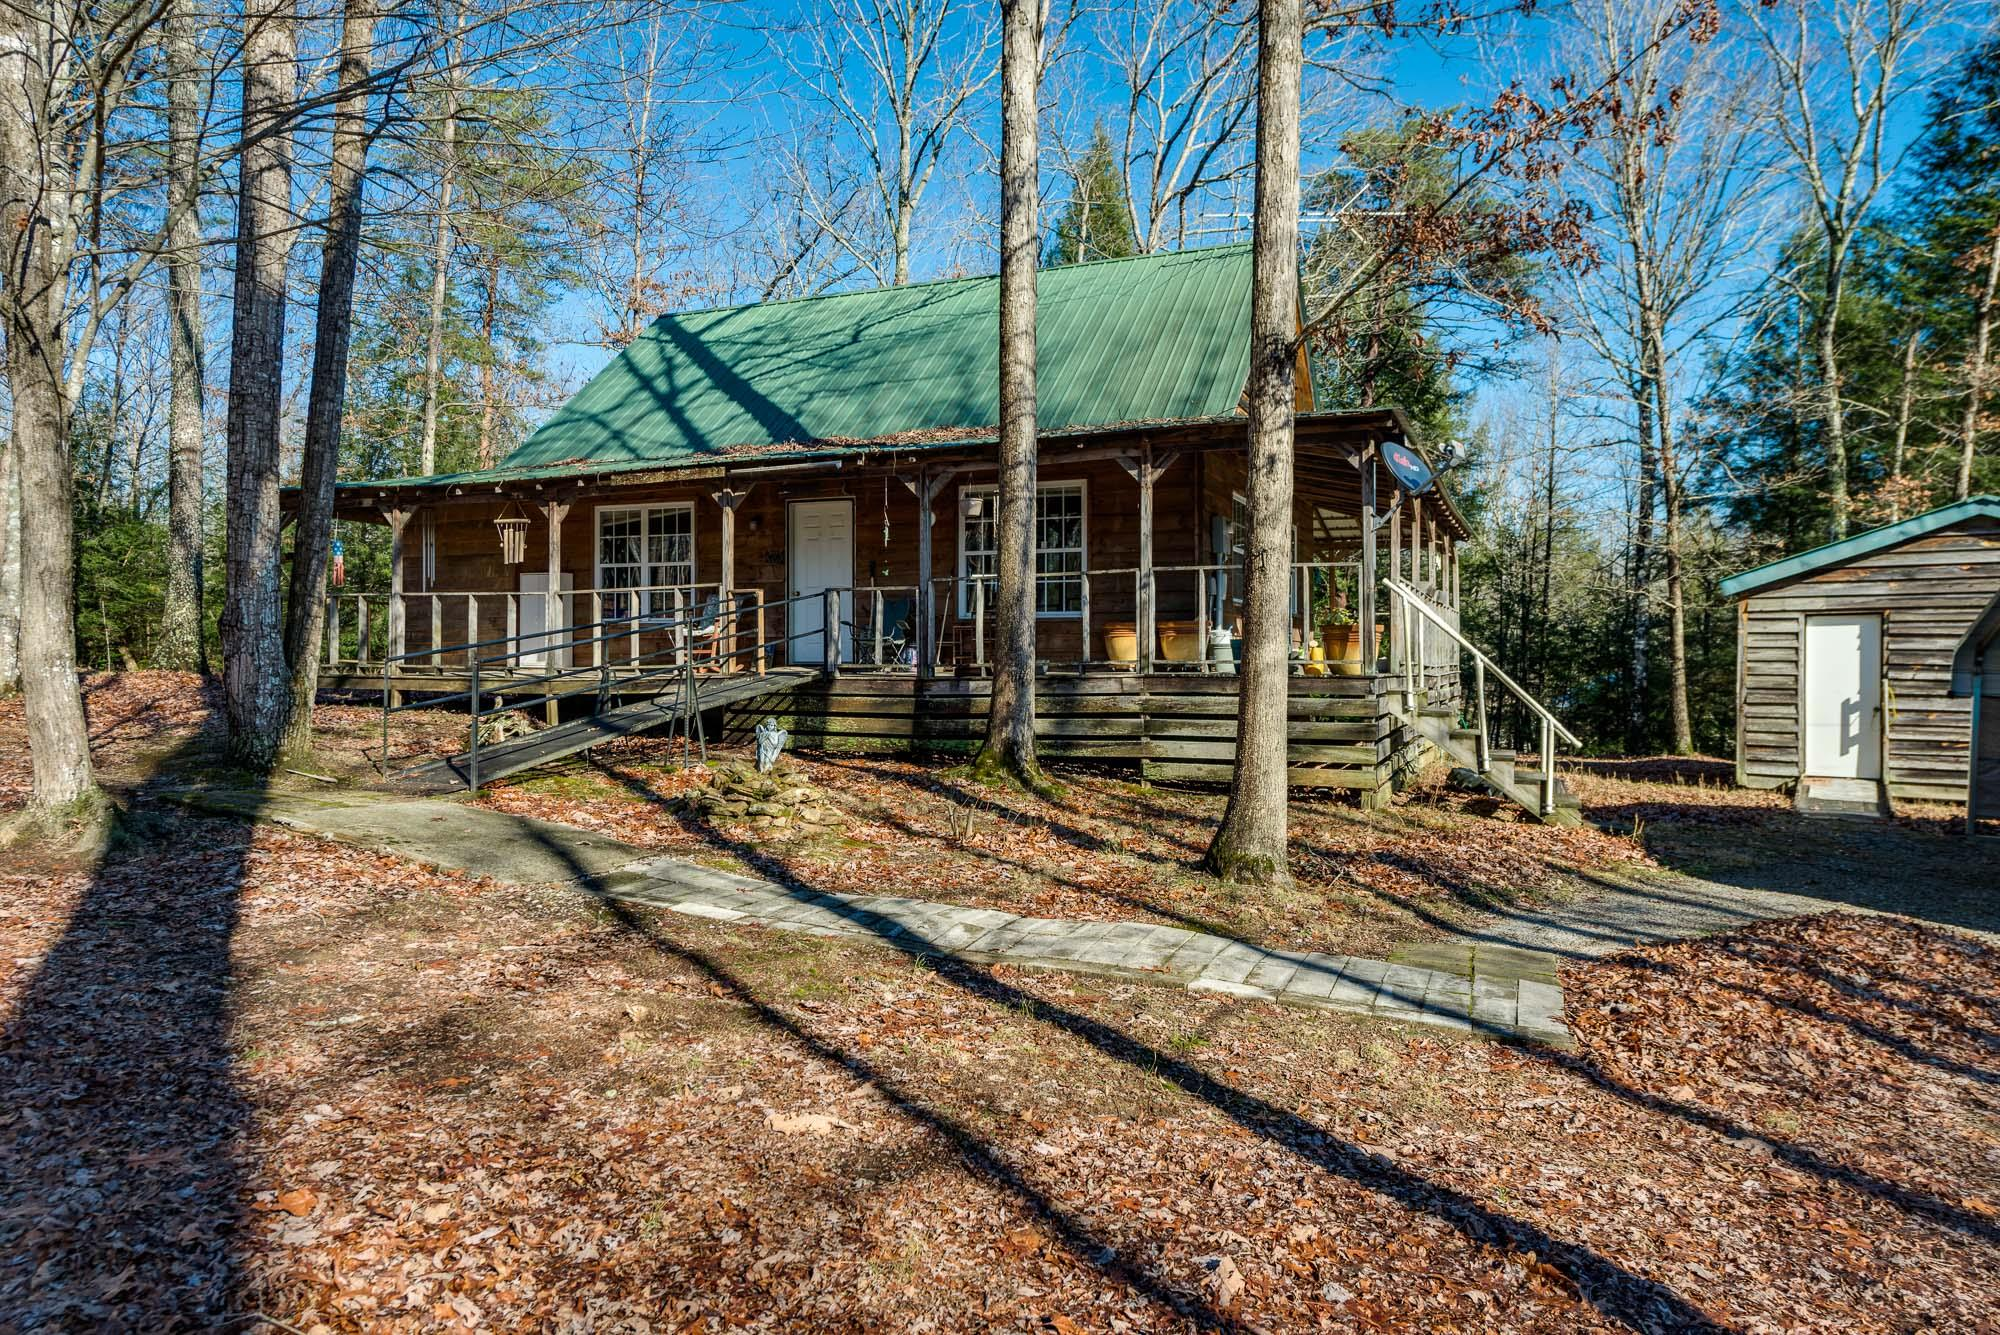 325 Ridge View Ln, Jamestown, TN 38556 - Jamestown, TN real estate listing